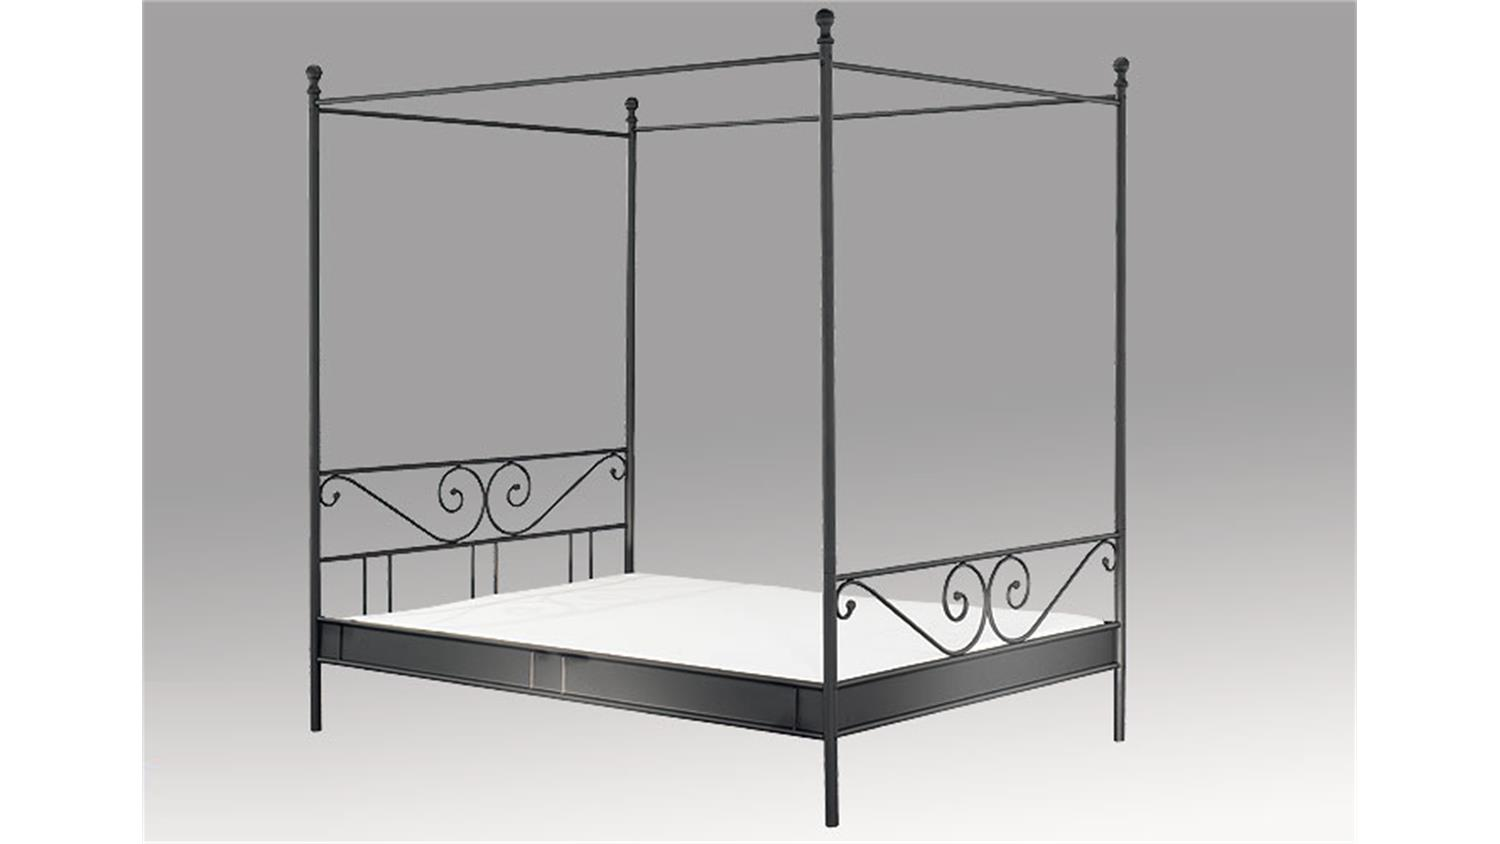 bettgestell 180 200 metall ebenbild das sieht stilvolle. Black Bedroom Furniture Sets. Home Design Ideas